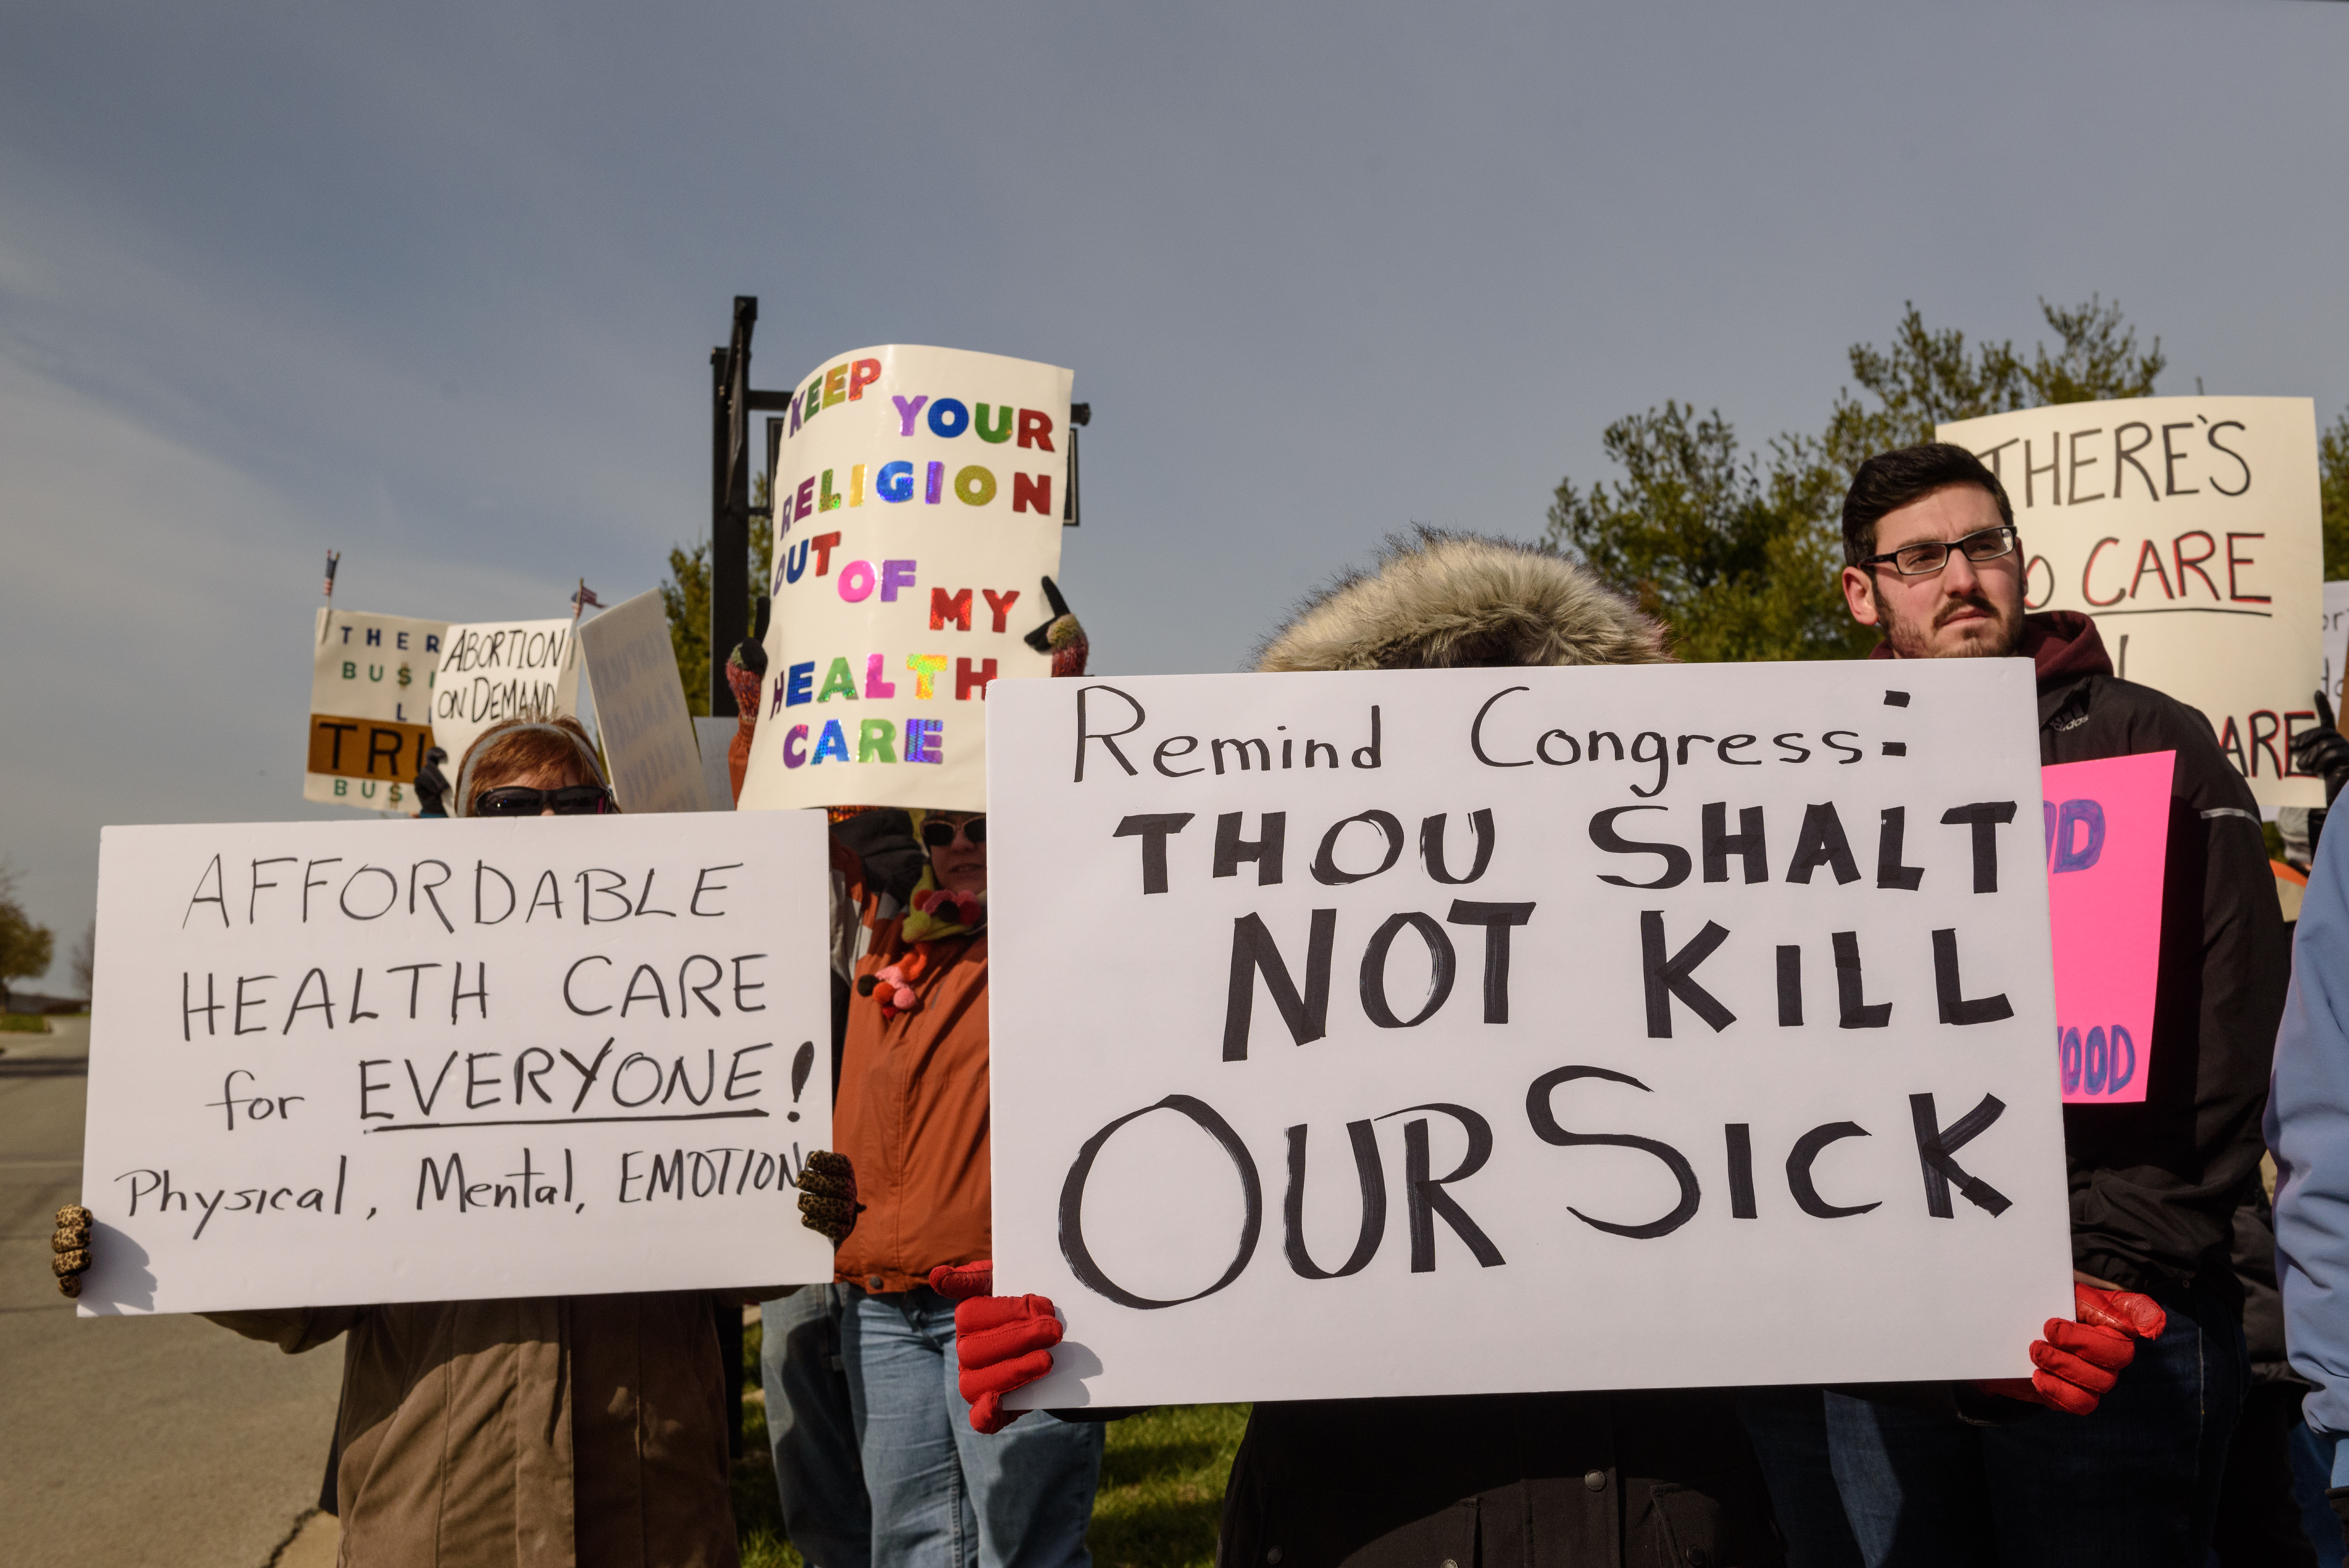 The protest was in regard to the Republican Party''s proposed changes to the Affordable Care Act.